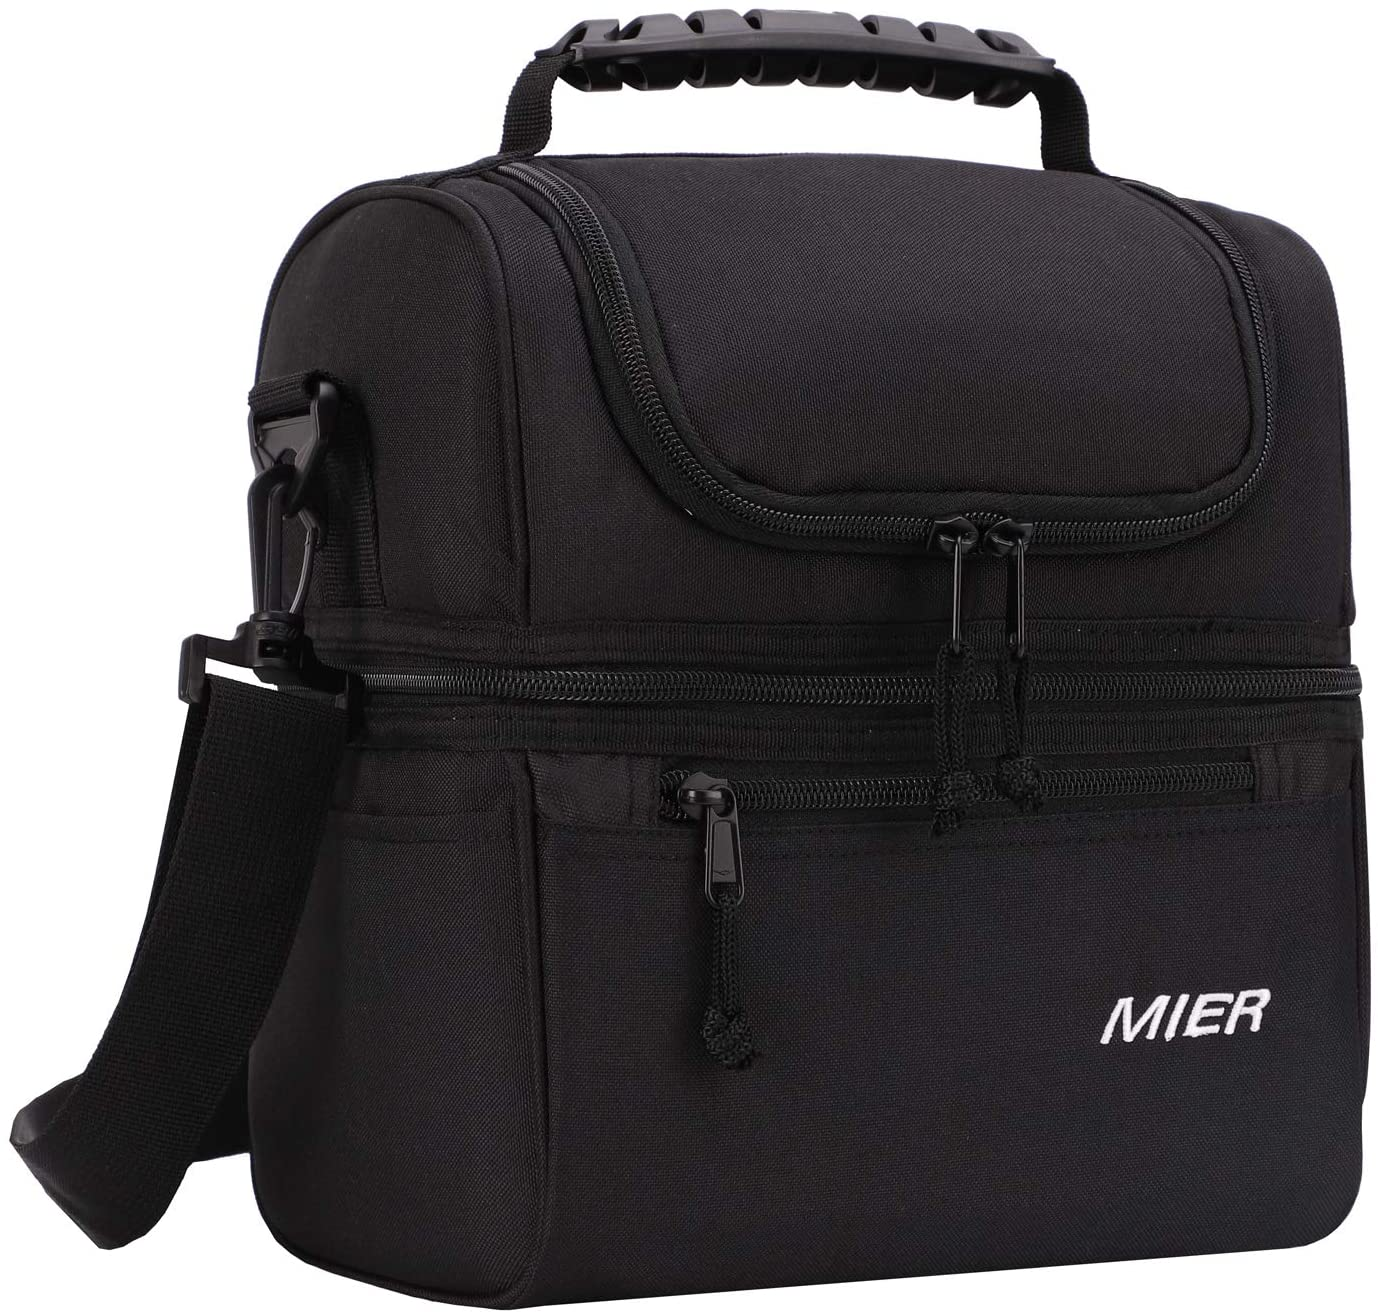 Mier Insulated Lunch Bag Render